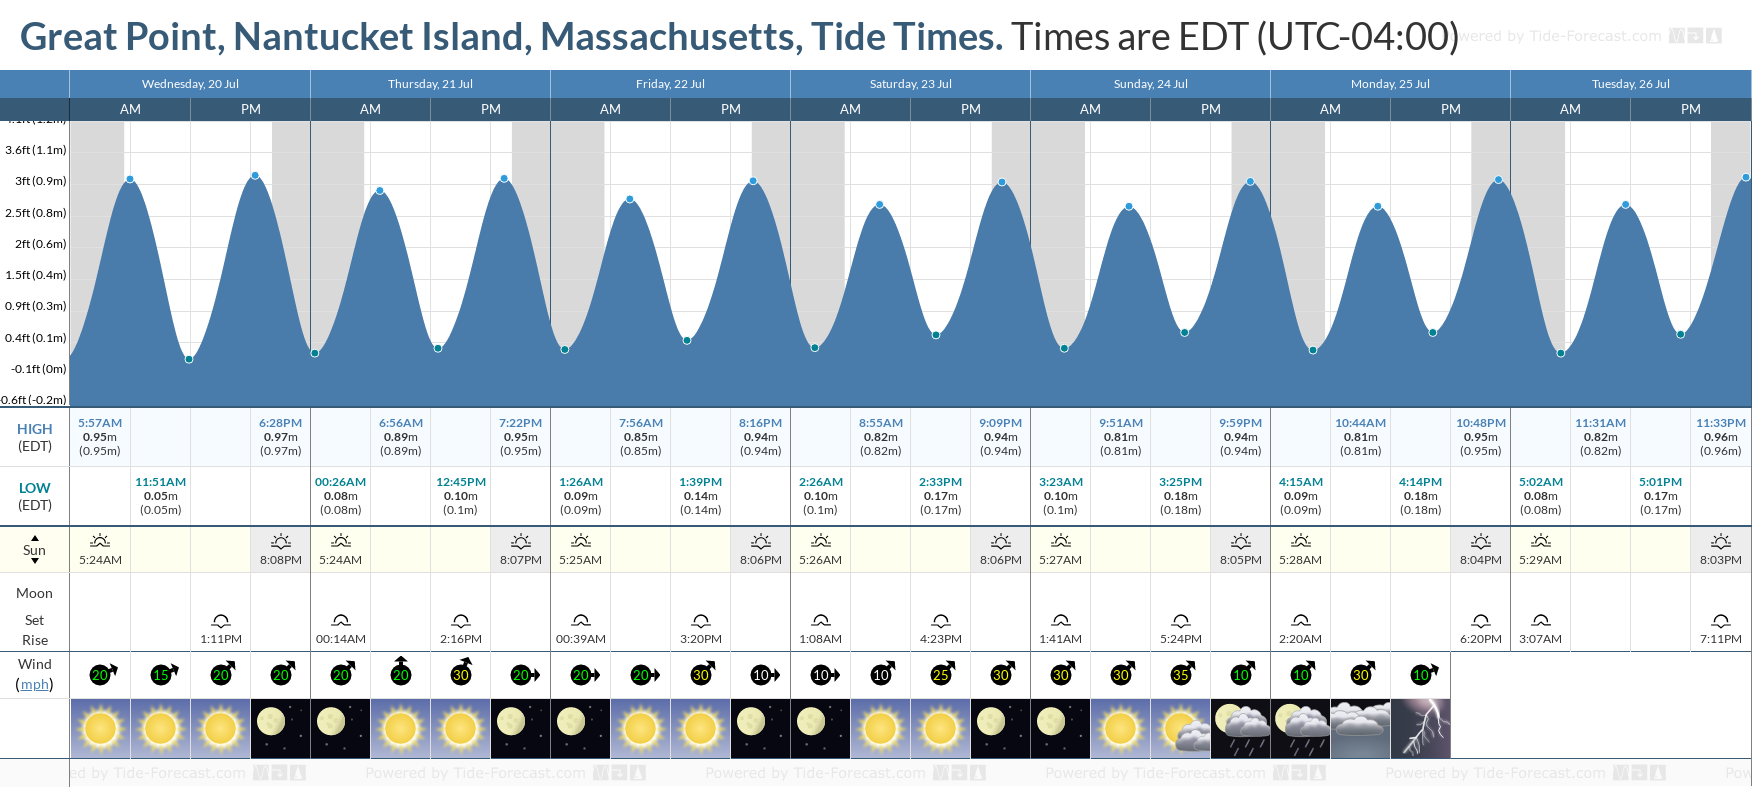 Great Point, Nantucket Island, Massachusetts Tide Chart including high and low tide tide times for the next 7 days